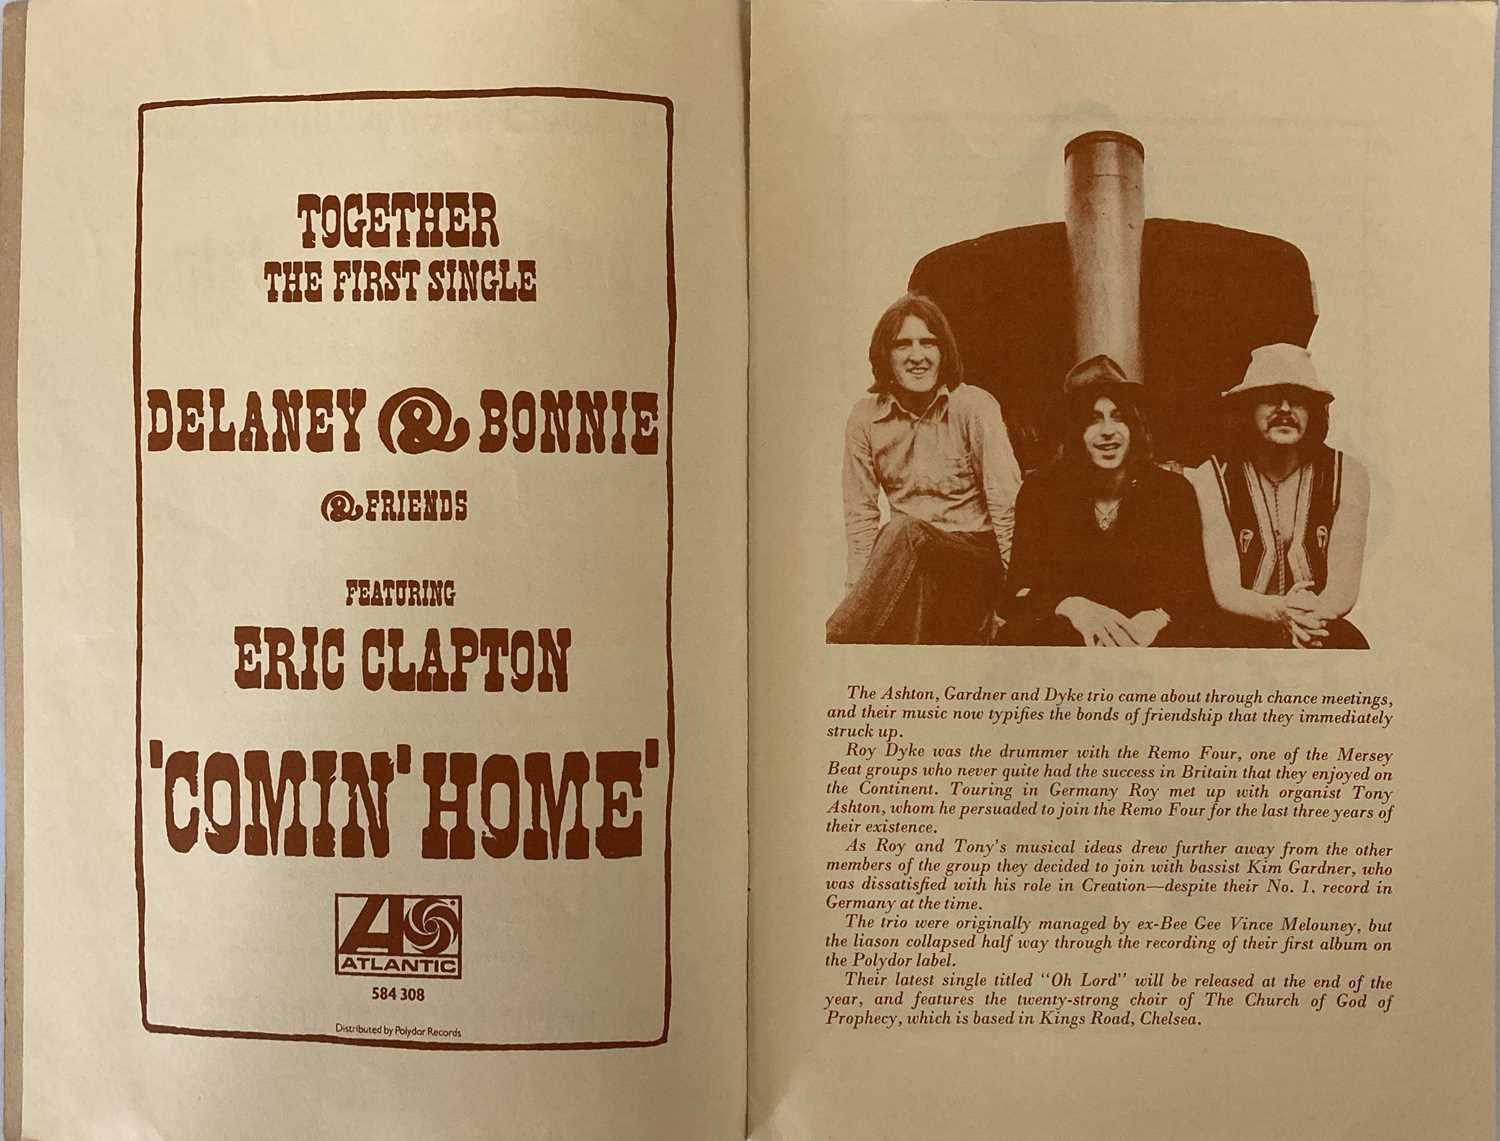 ERIC CLAPTON DELANEY AND BONNIE 1969. - Image 3 of 3